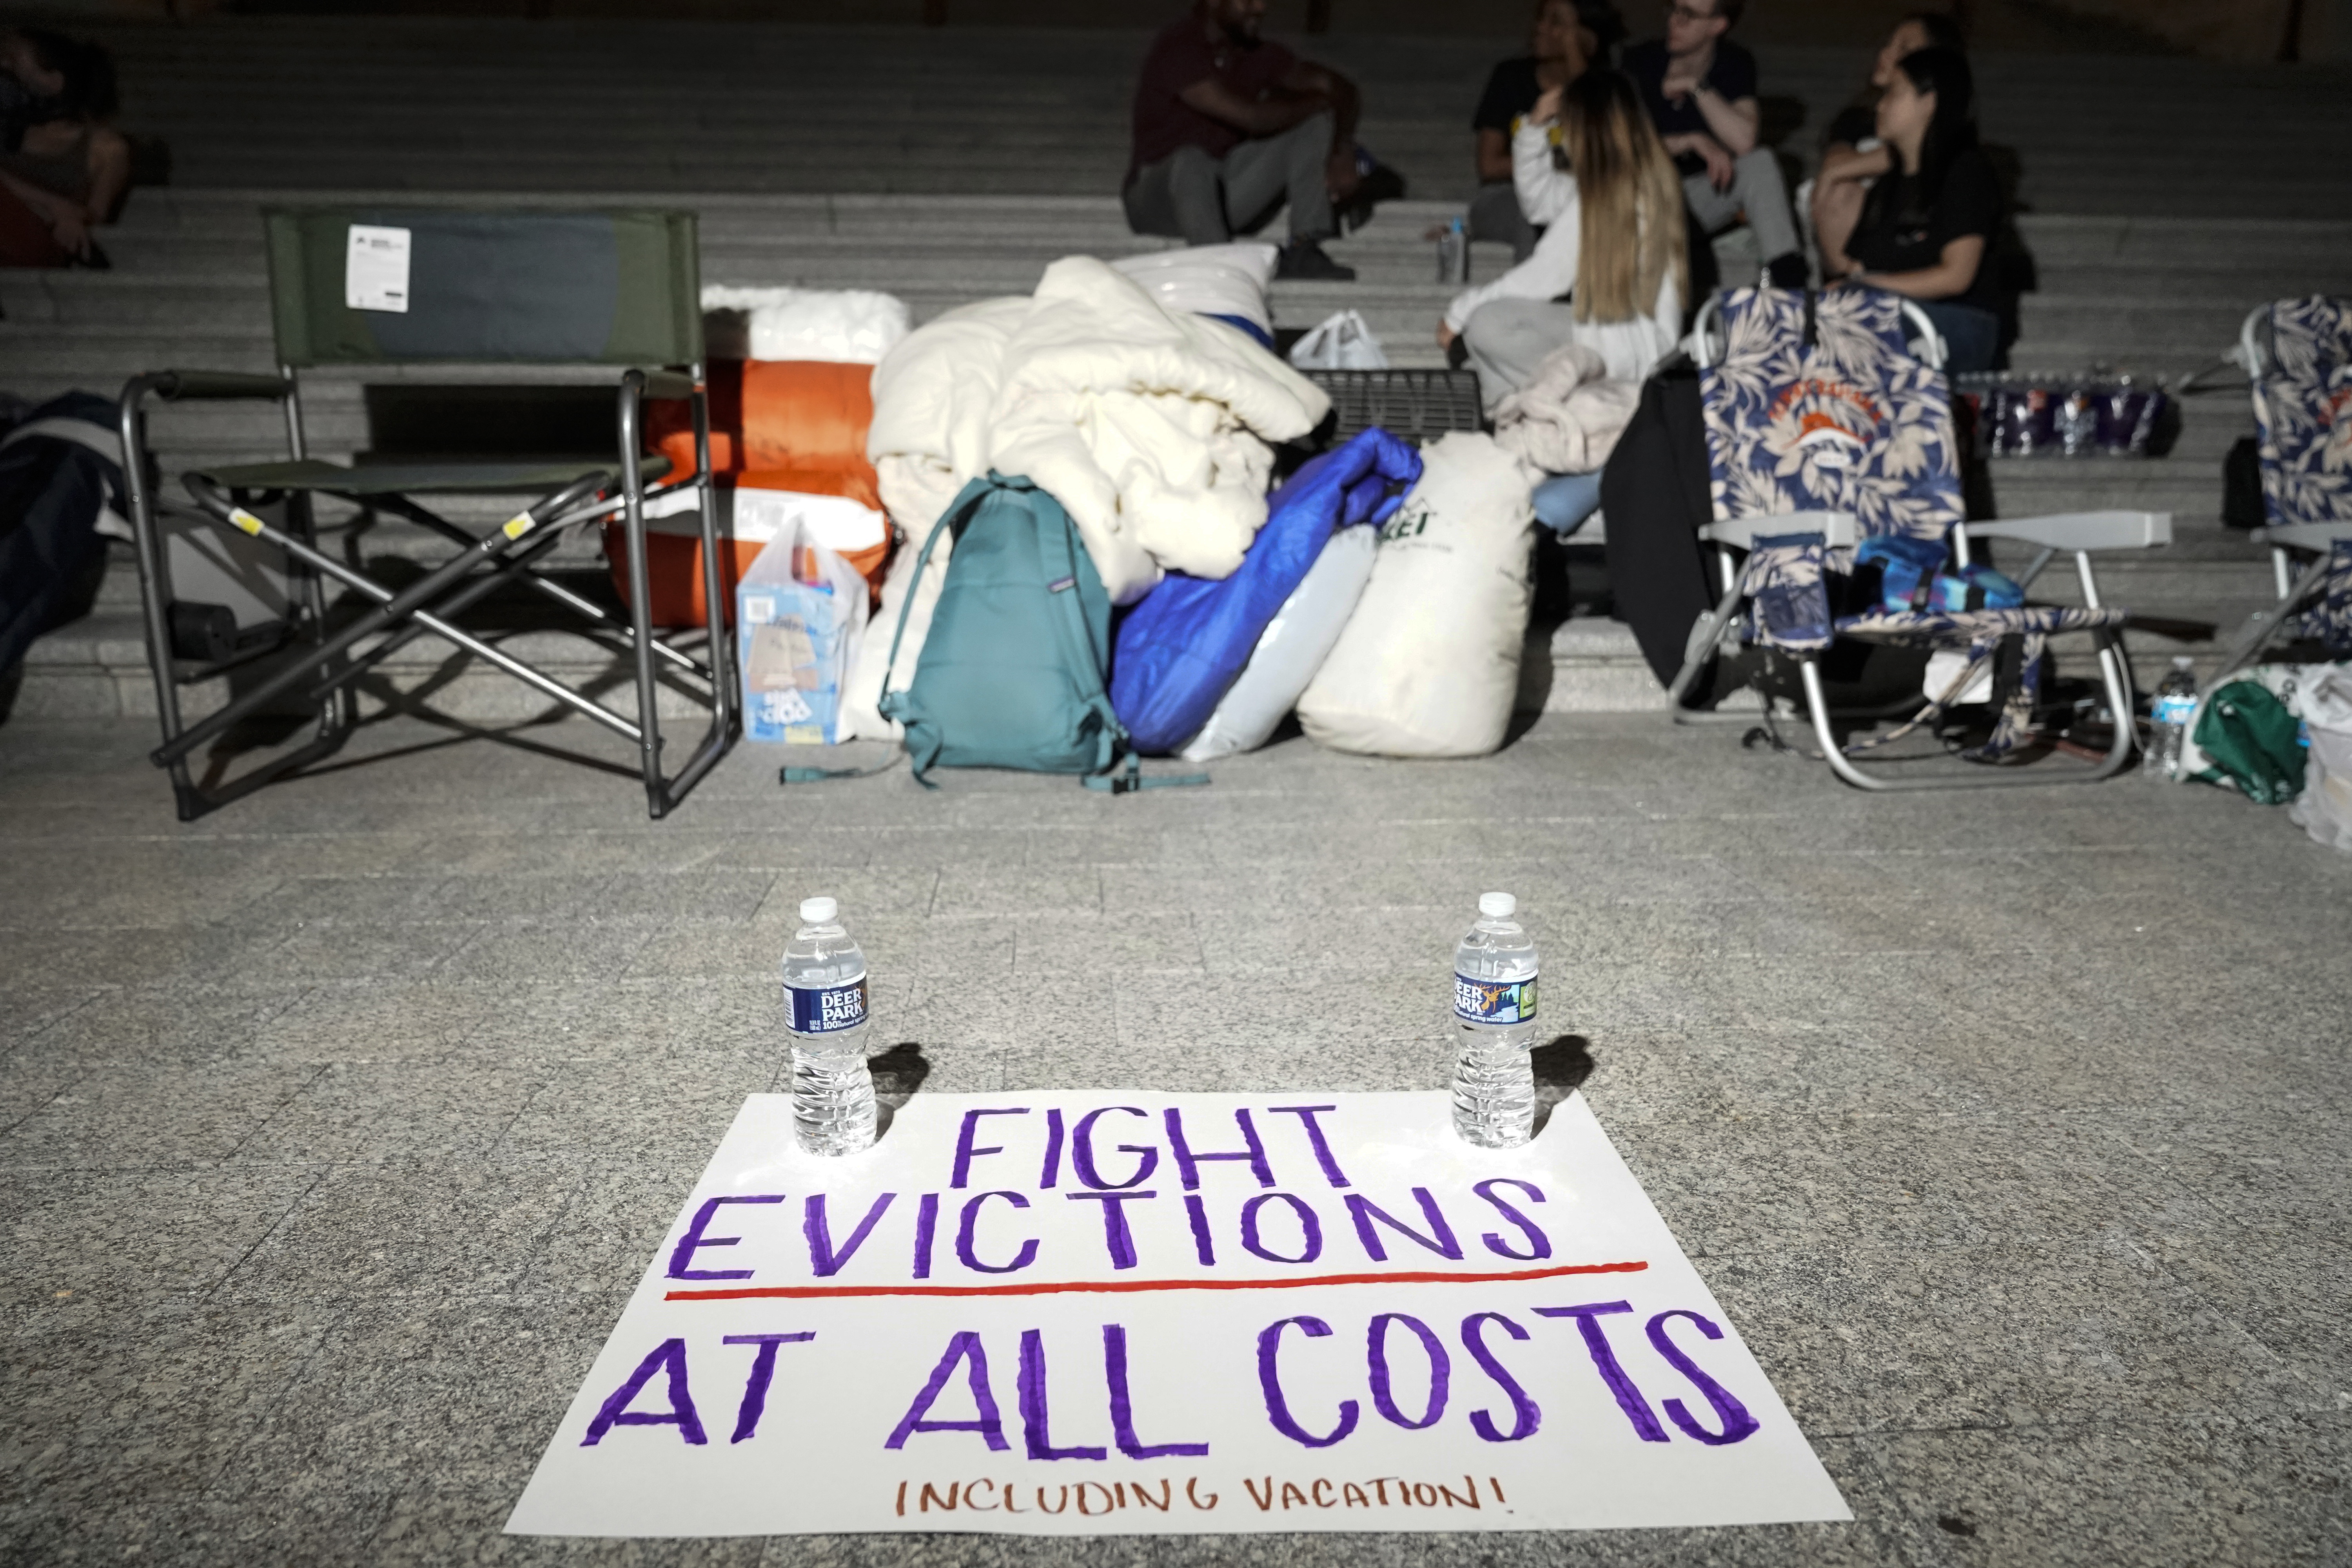 A sign calling for fighting evictions is set on the ground in front of outdoors chairs, bags and water bottles, where people have been camping outside.